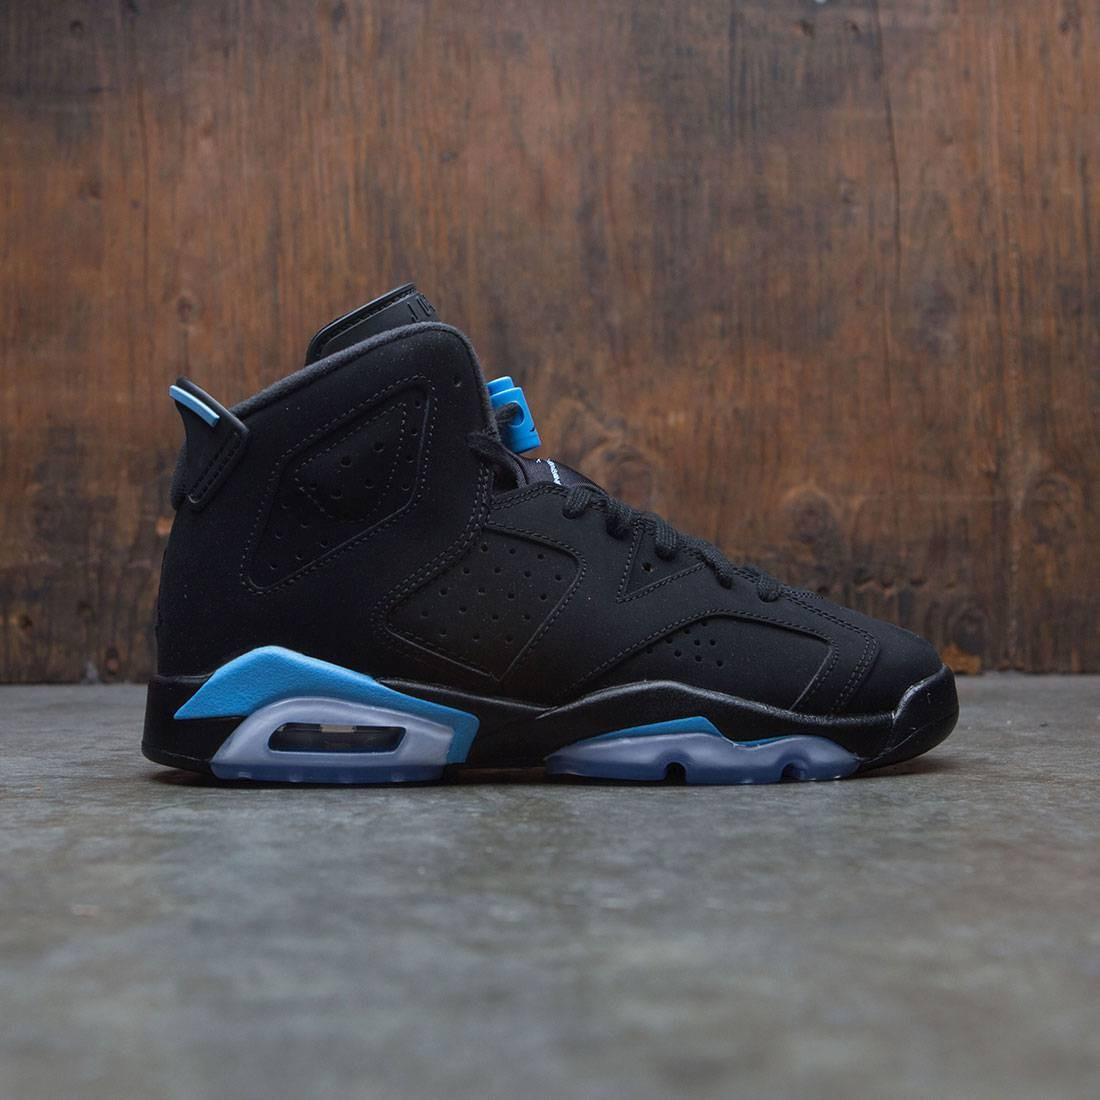 dd06615c394 jordan big kids air jordan 6 retro gs black university blue